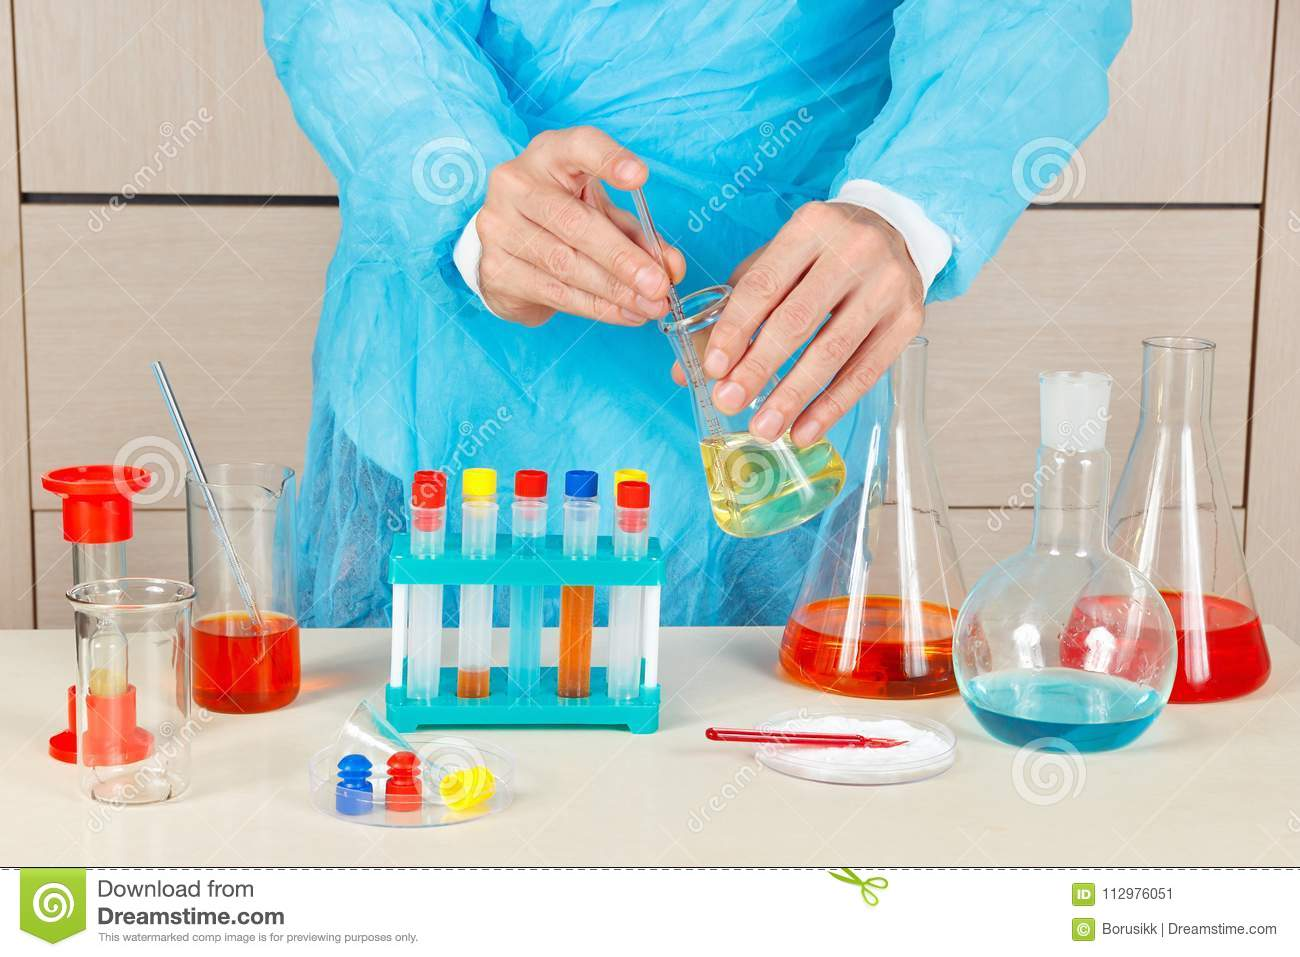 Researcher doing chemical experiments in laboratory